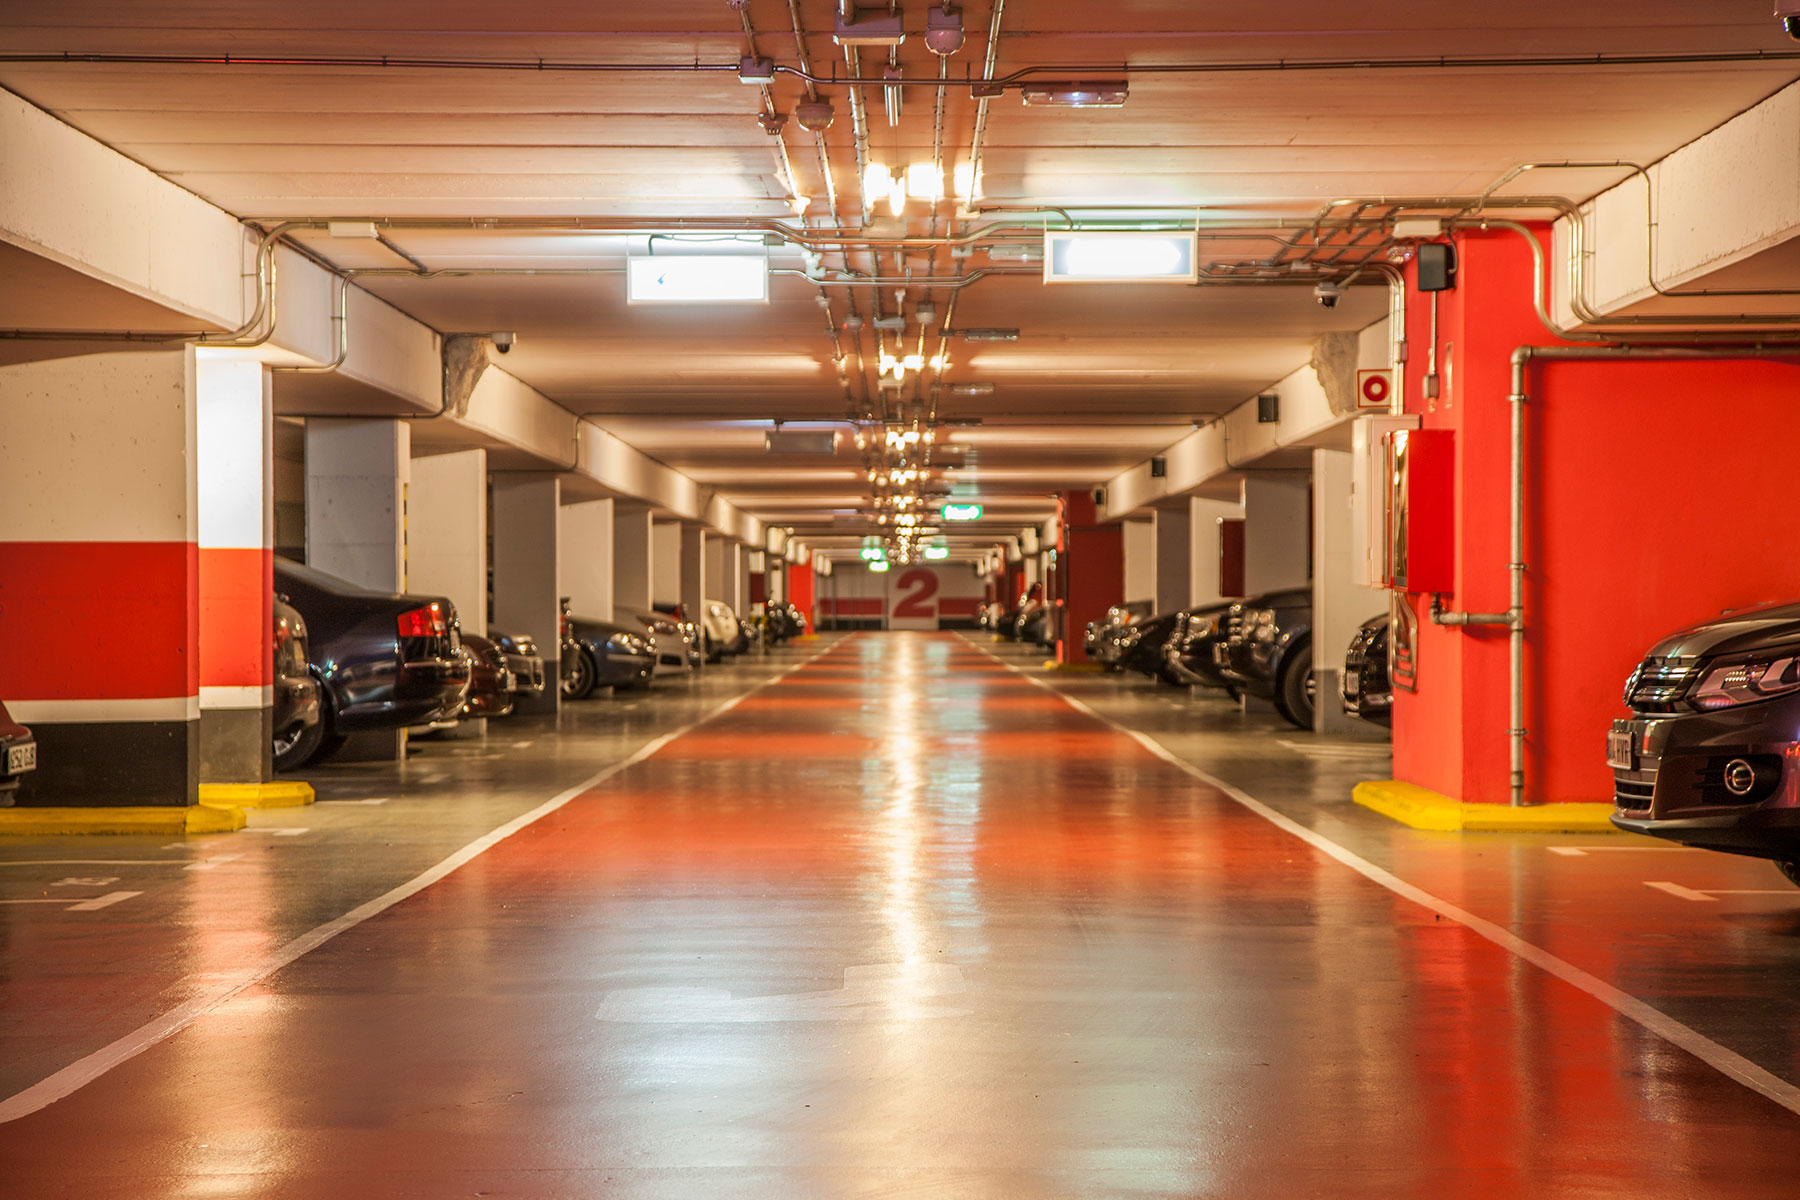 006_parking_cardenal_sentmenat_barcelona_location_bsm